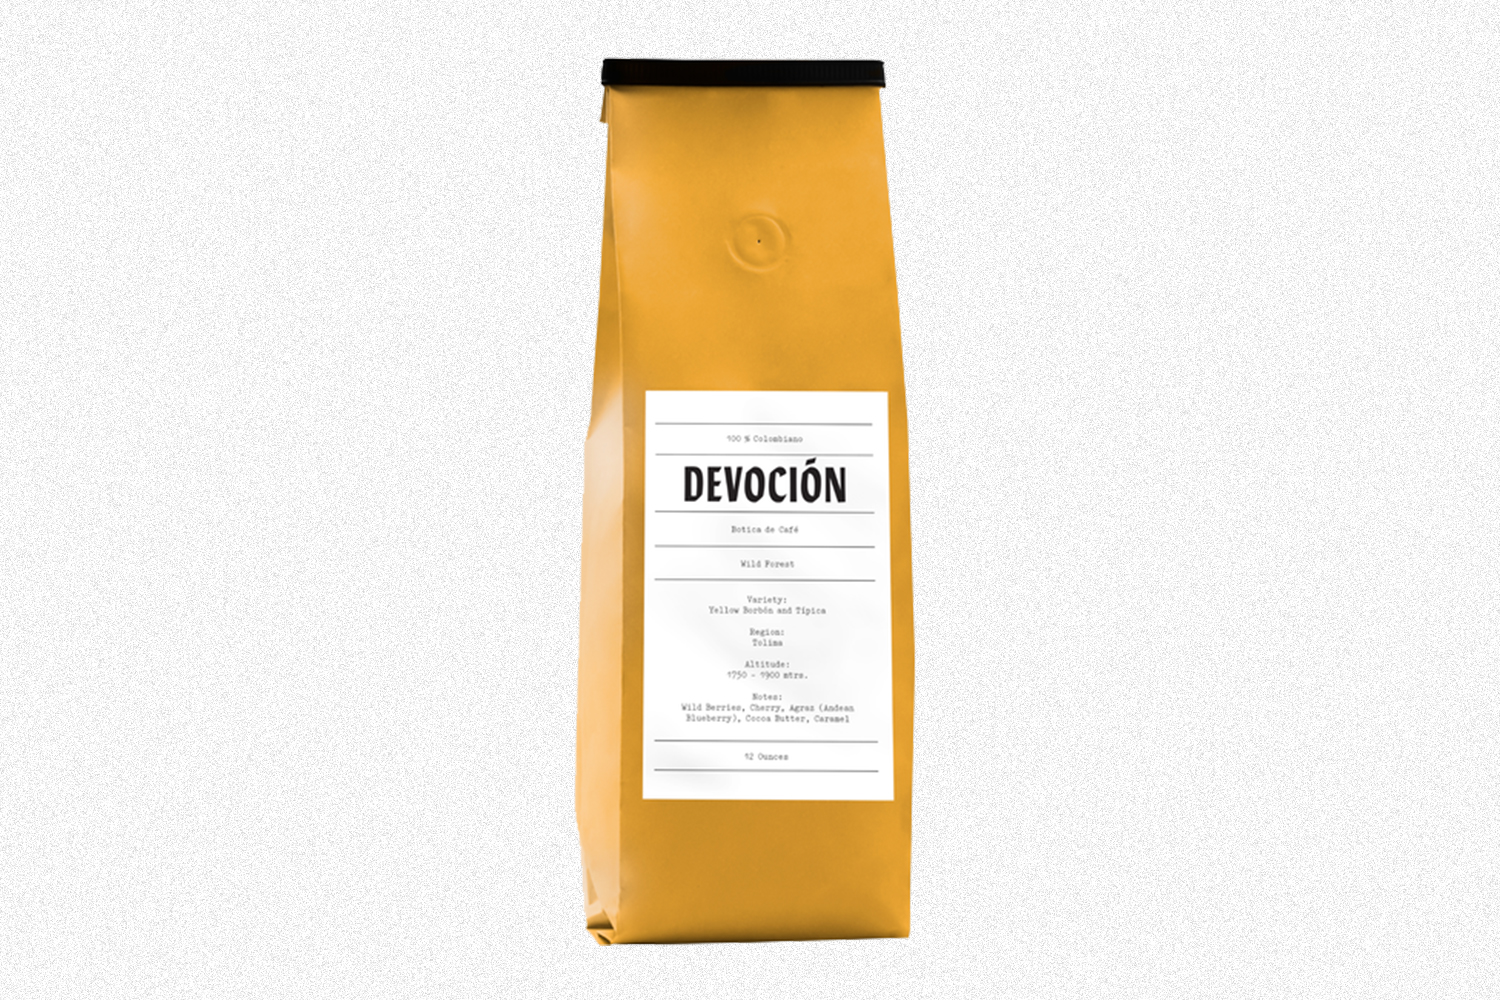 A yellow bag of Devoción coffee beans